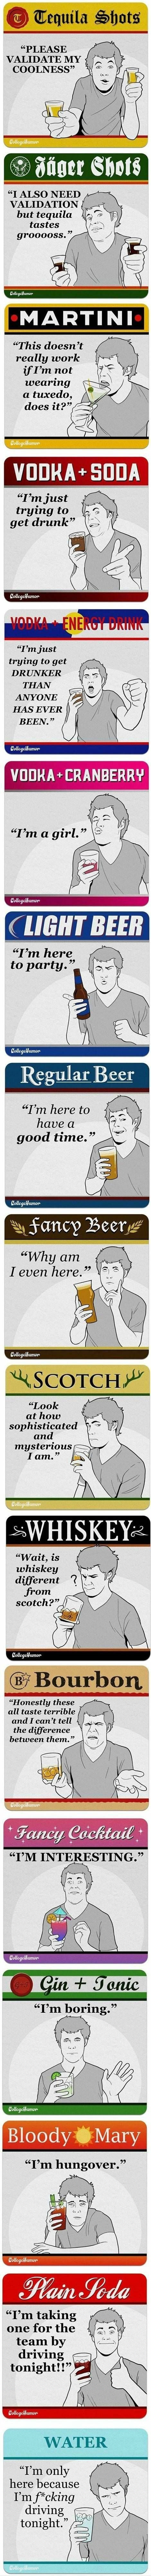 The reasons people drink what they do ;p